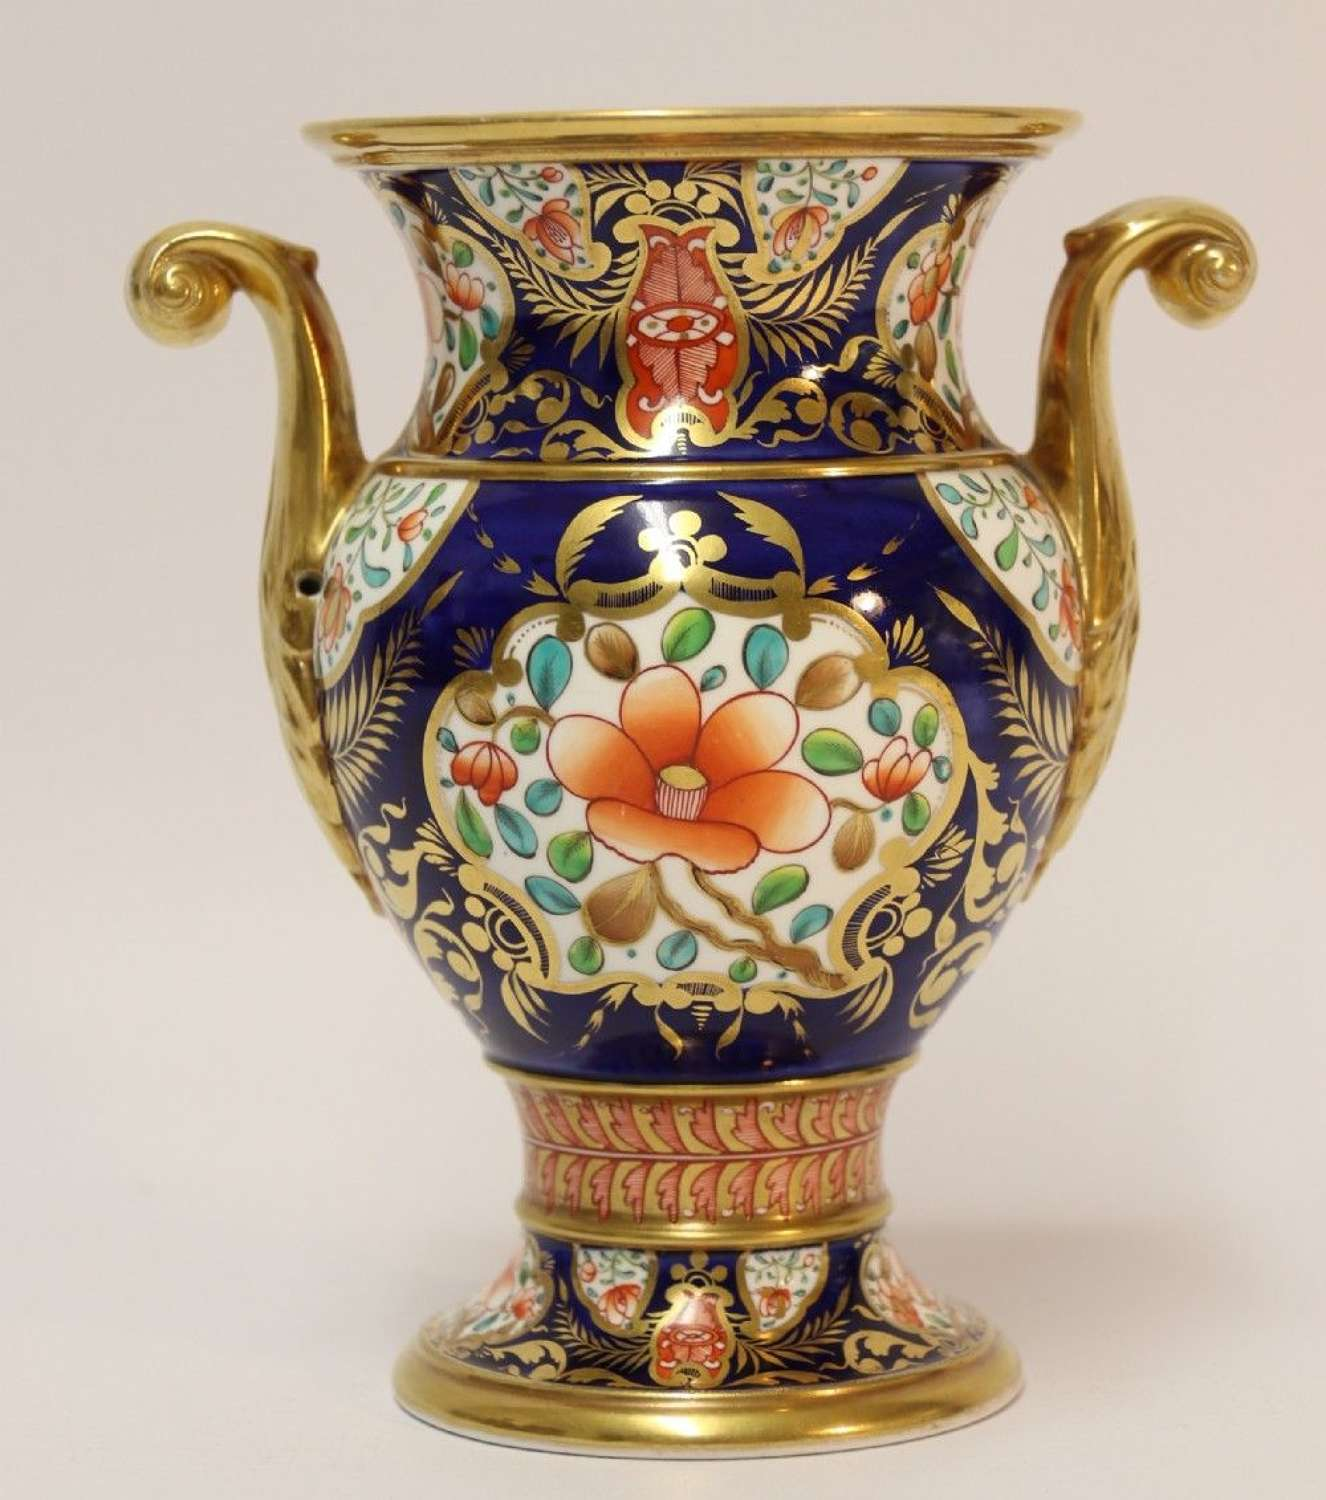 A Superb Early 19th Century Spode Vase